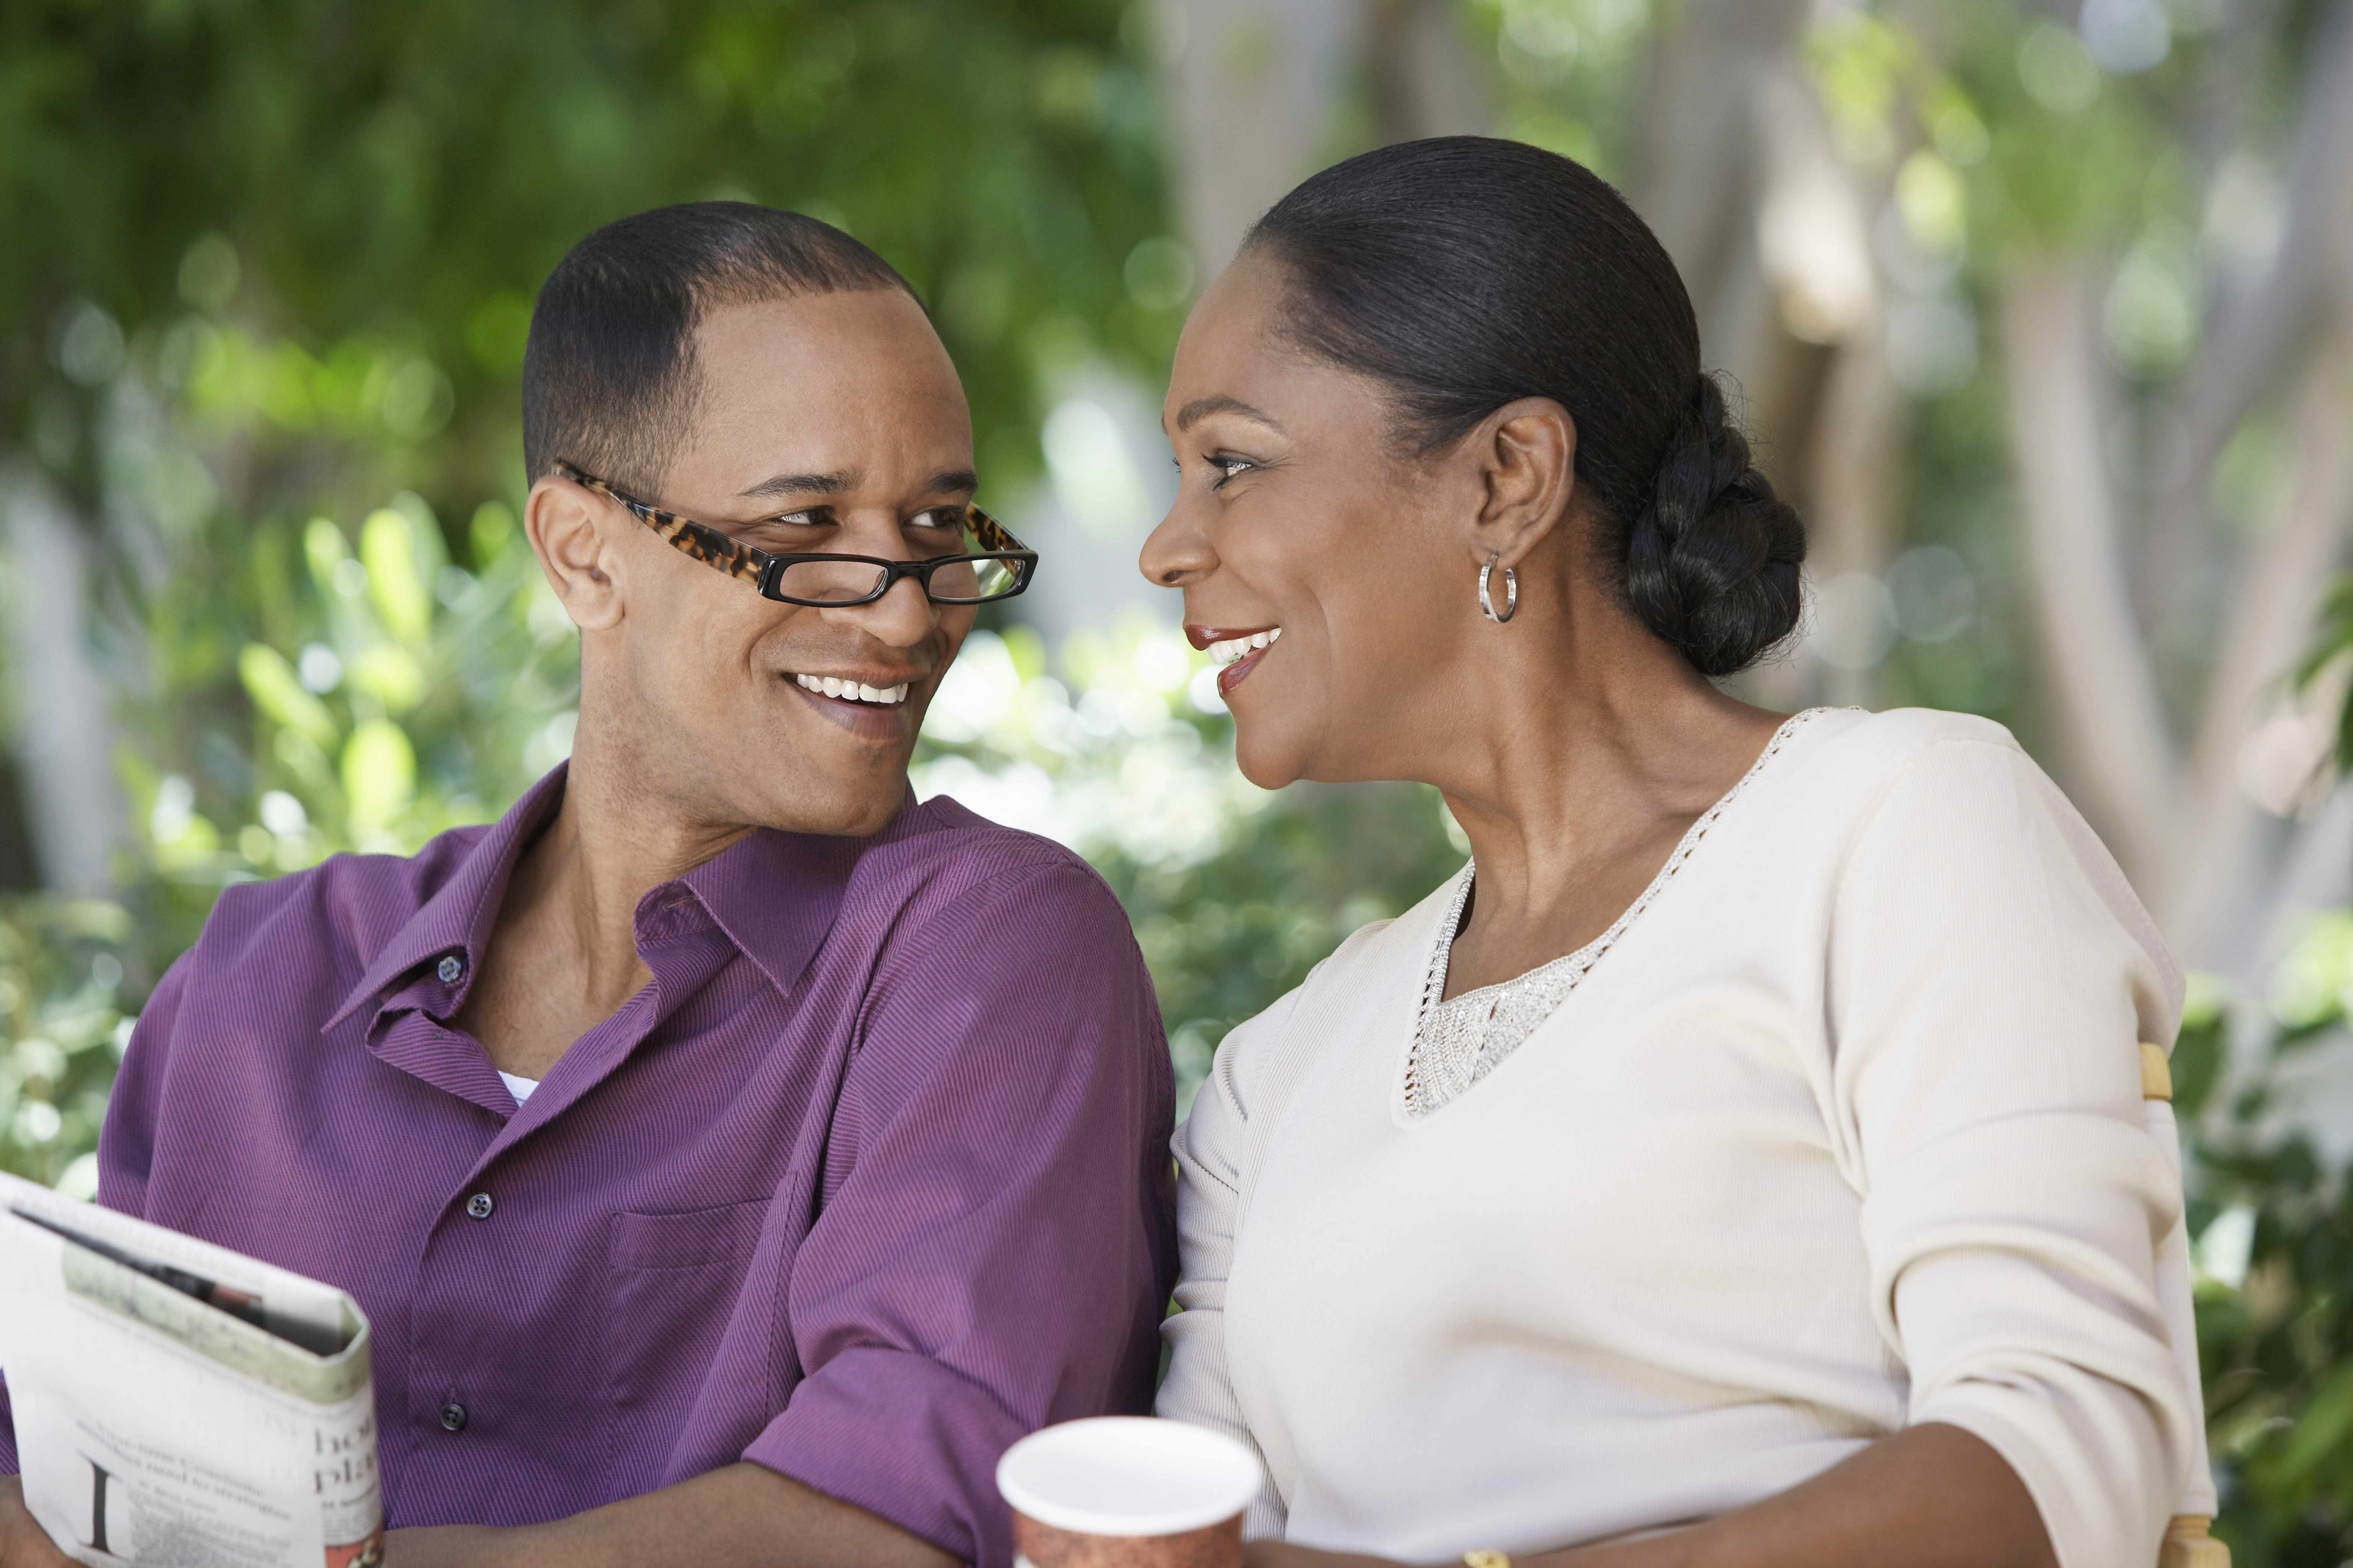 a middle-aged couple sitting outside, looking at one another and smiling